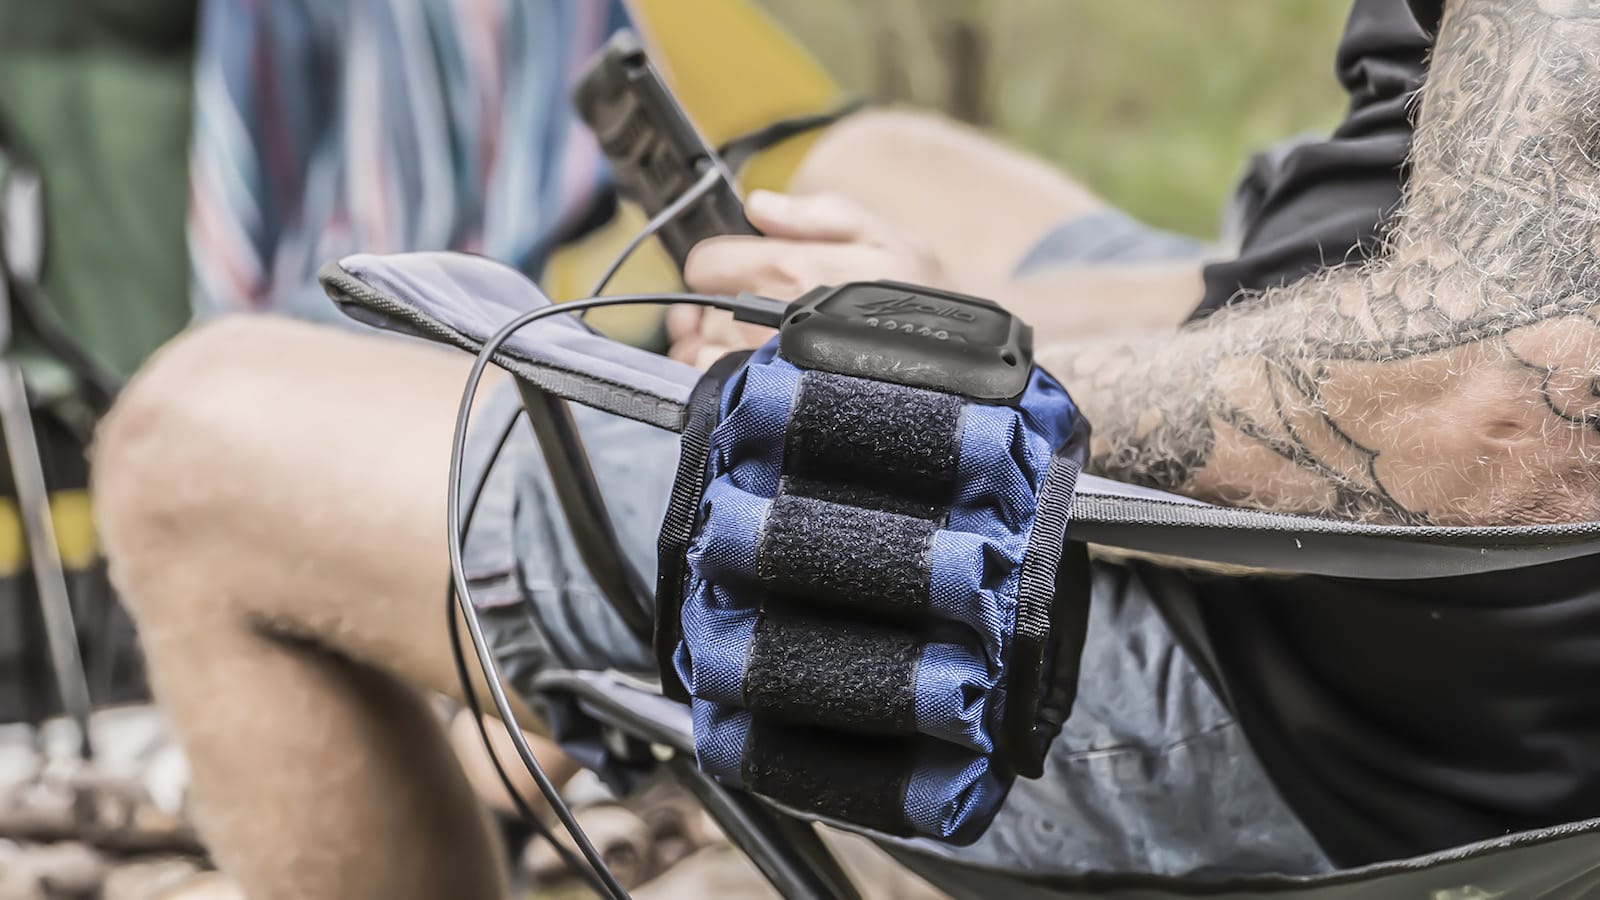 Rolla flexible portable battery pack is multifunctional across all applications